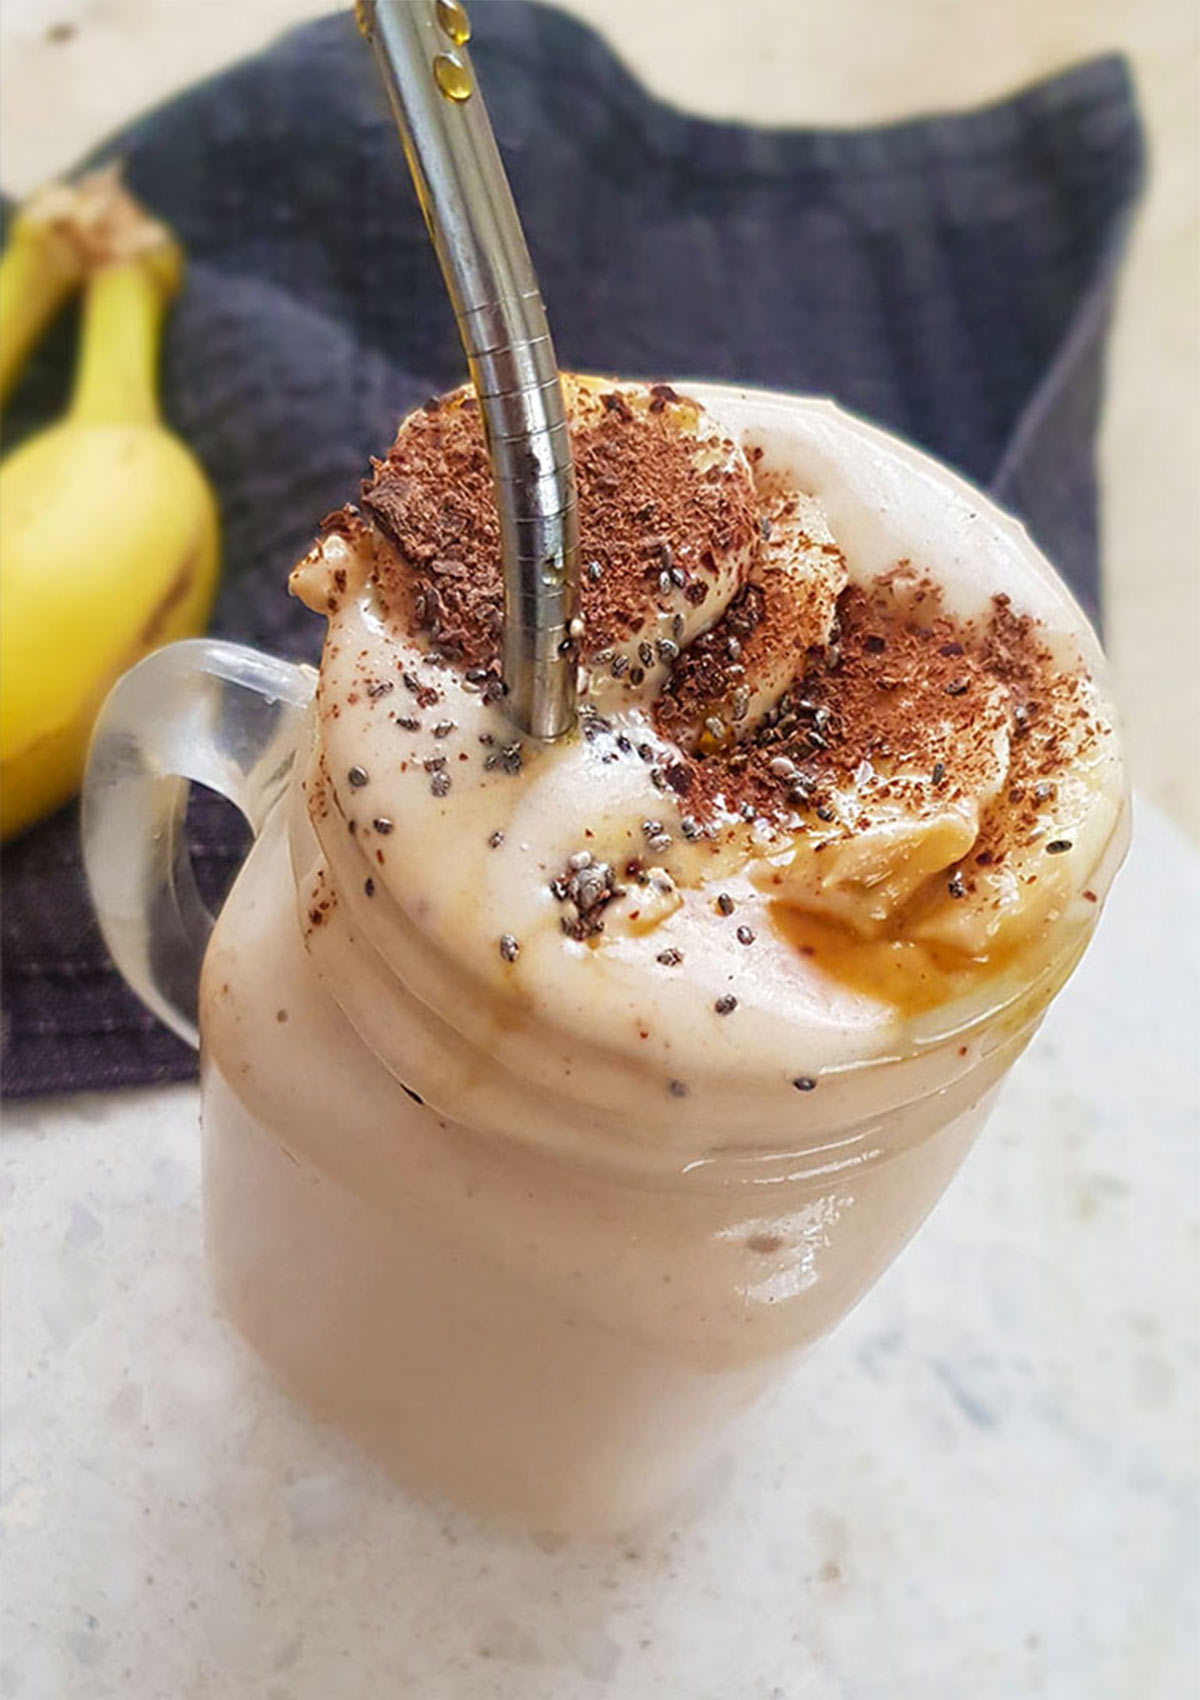 Banana peanut butter smoothie topped with banana slices and chia seeds.